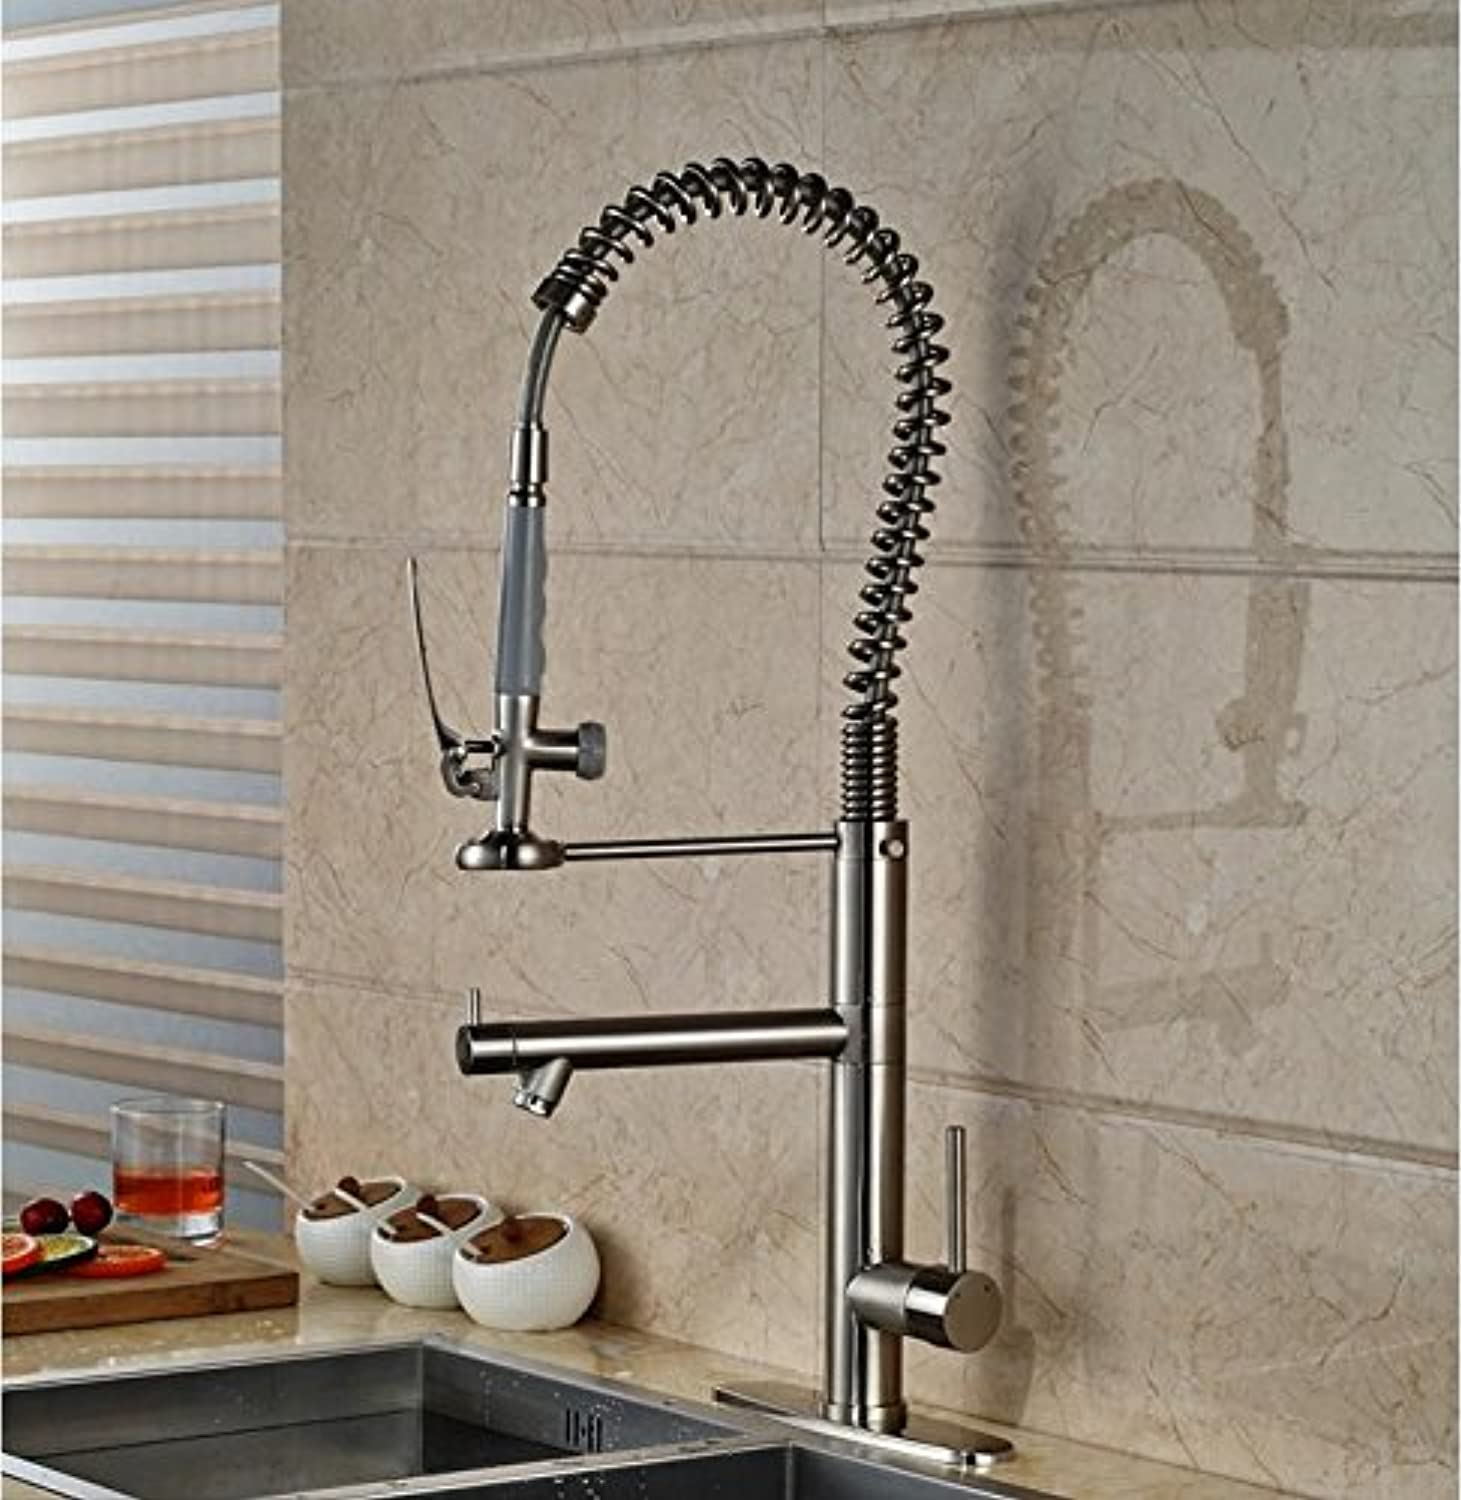 Tw High Style Nickel Brushed Finished Deck Mounted Kitchen Sink Faucet With Cover Plate